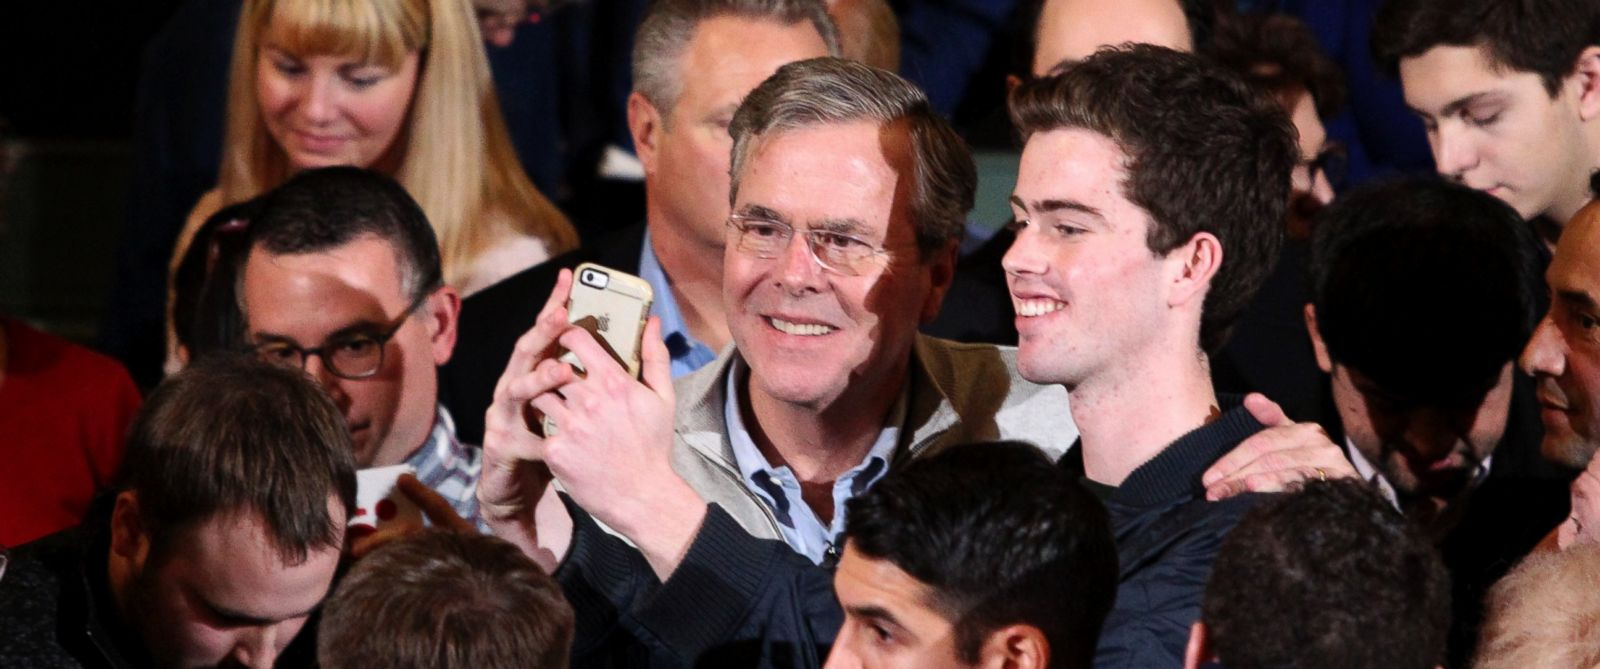 PHOTO: Republican presidential candidate Jeb Bush poses for a photo with a potential supporter after a town hall event, Saturday, Dec. 19, 2015, in Exeter, N.H.